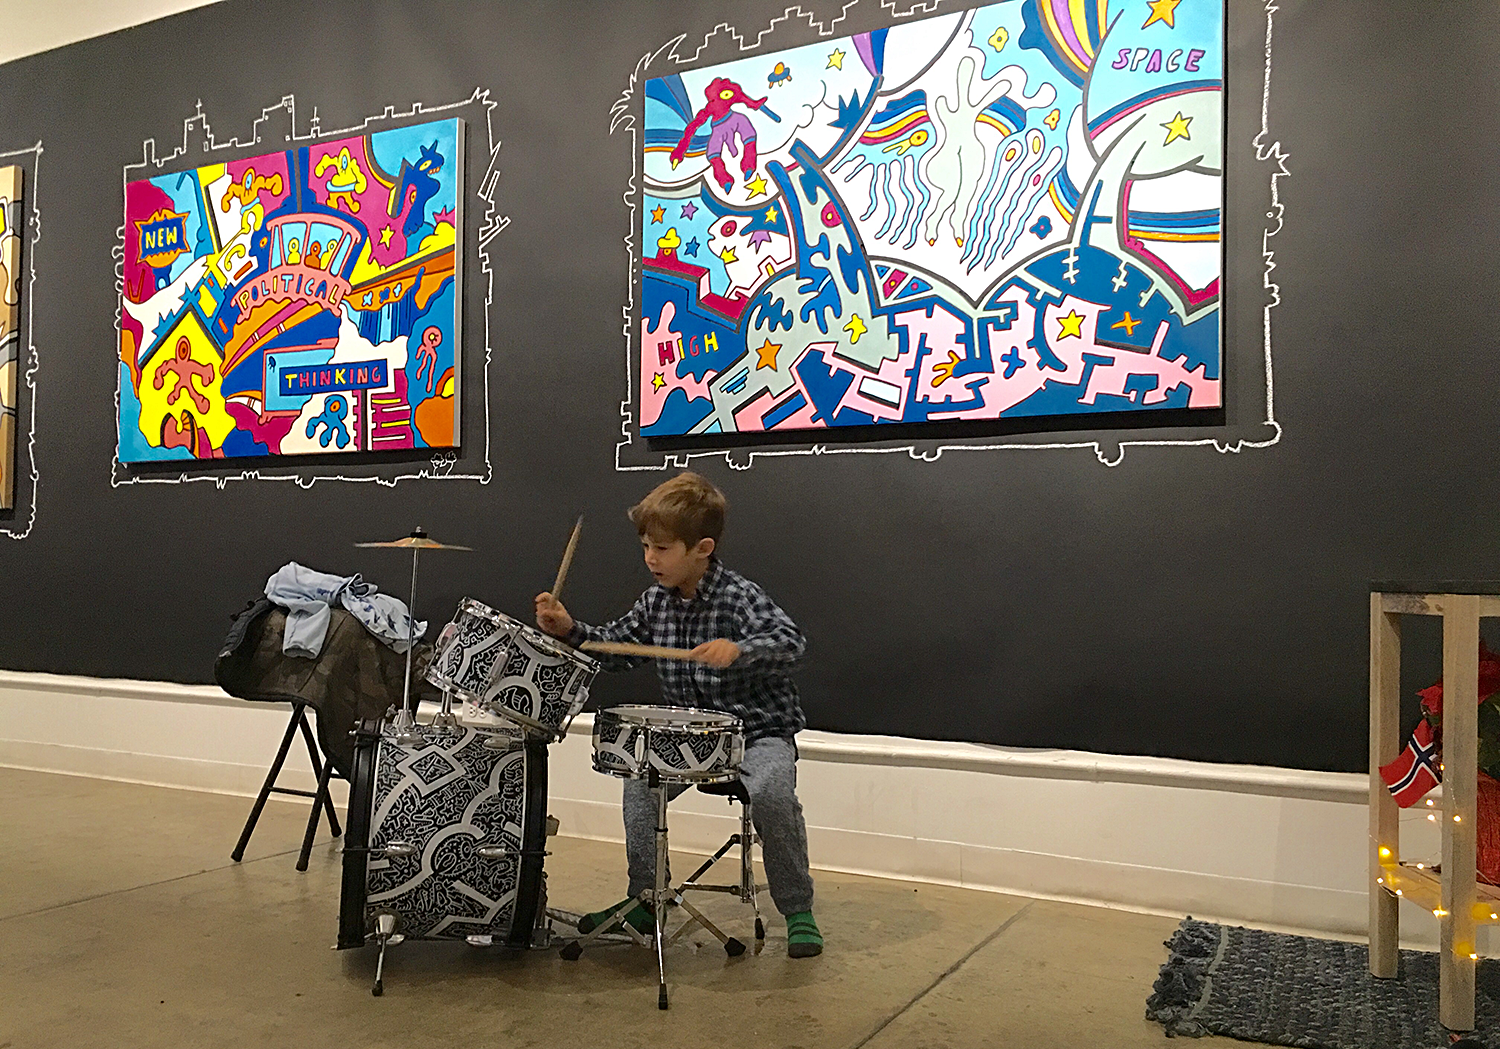 Young boy playing drums during a workshop at Filo Sofi Arts a New York City gallery